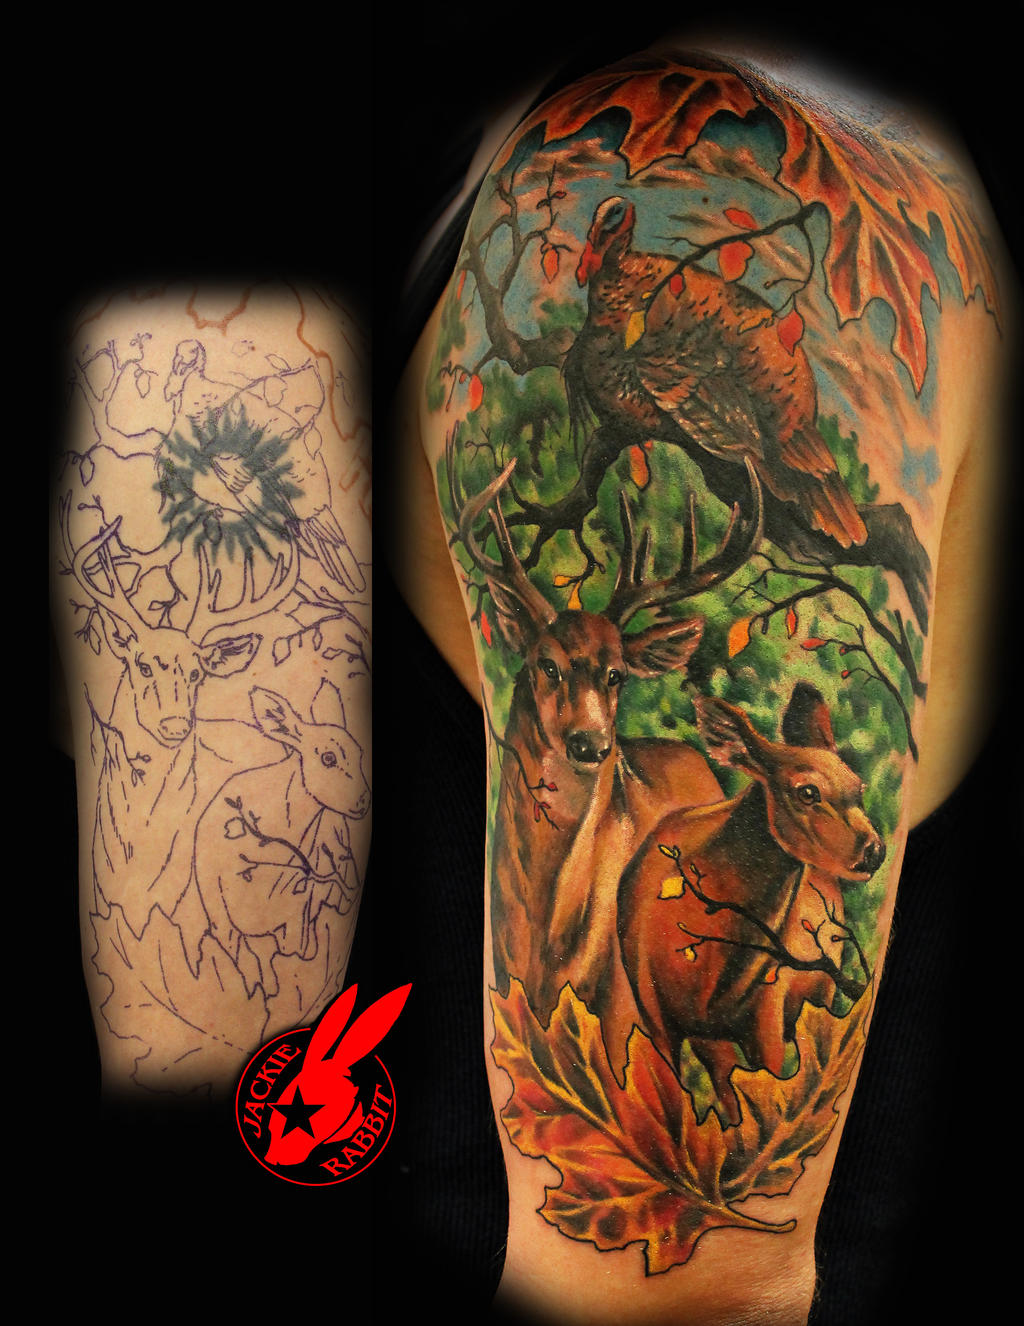 Deer hunting tattoo sleeve the image for Tattoo cover sleeves